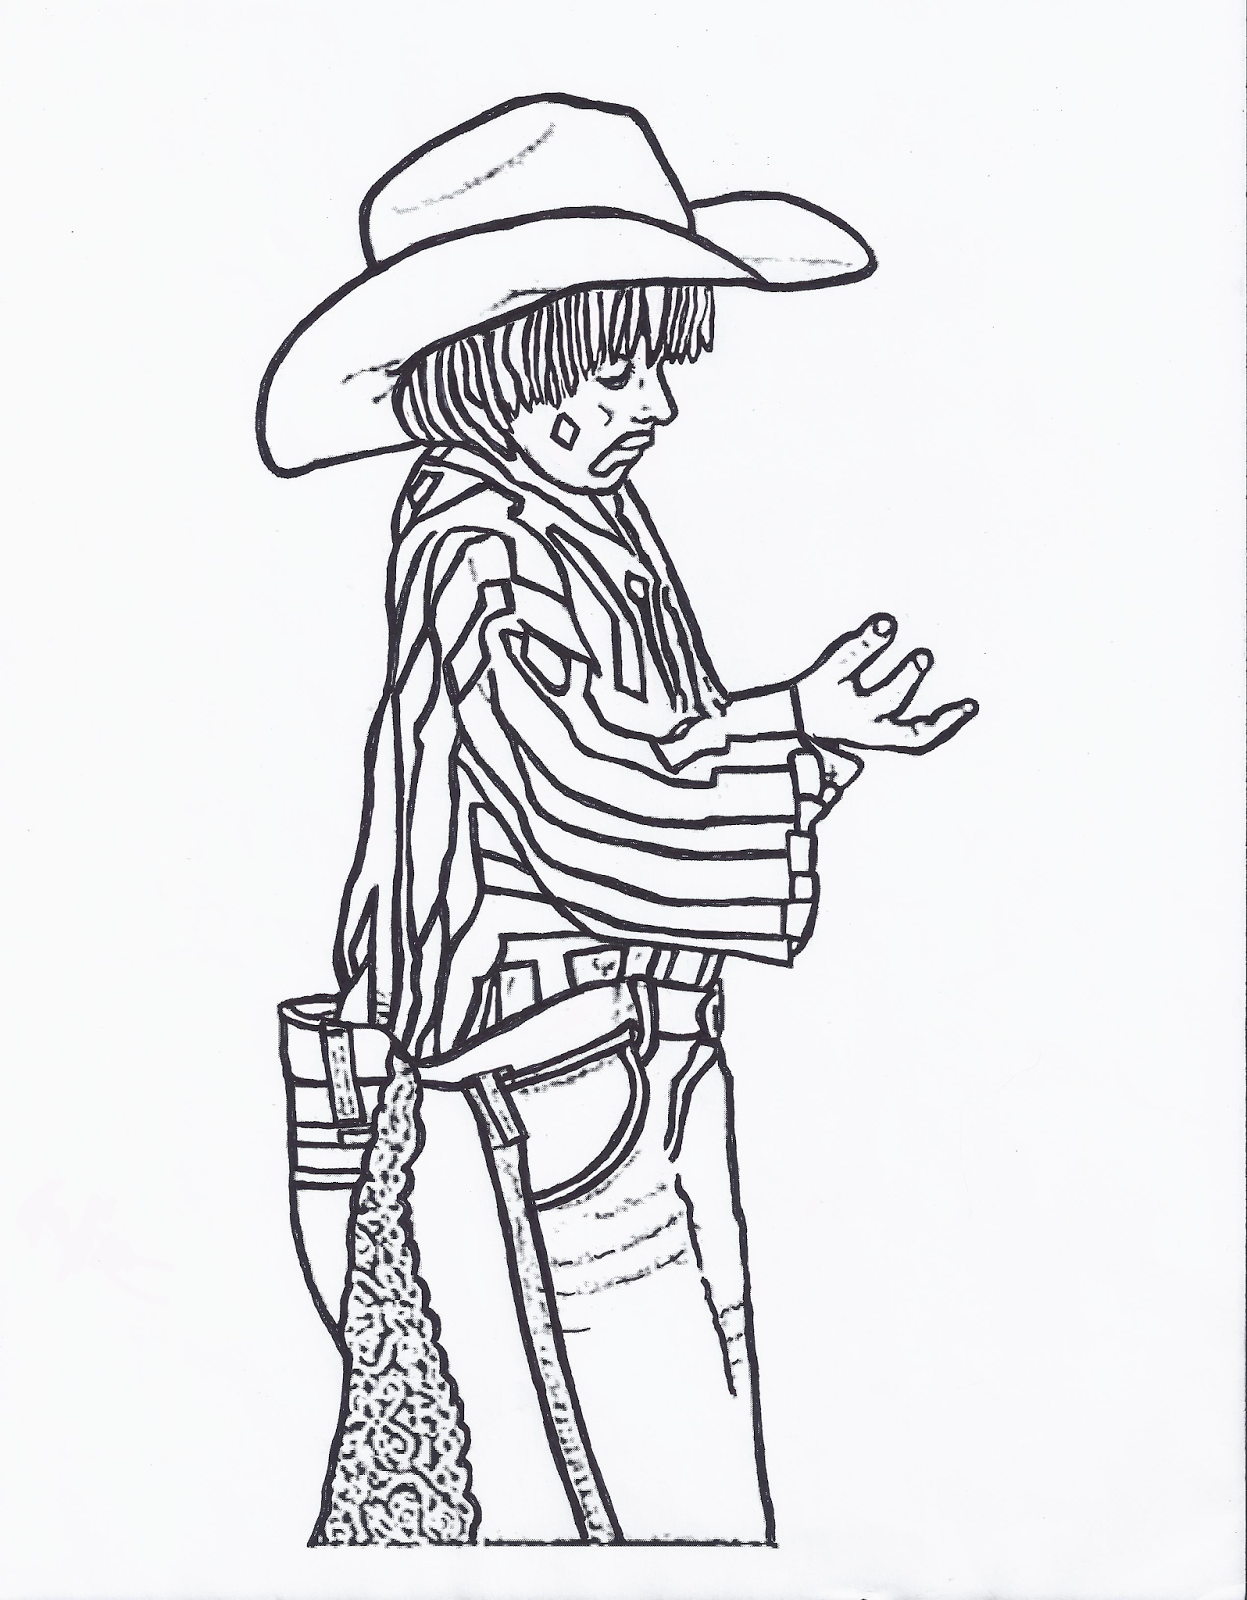 Rodeo Drawing at GetDrawings.com | Free for personal use Rodeo ...